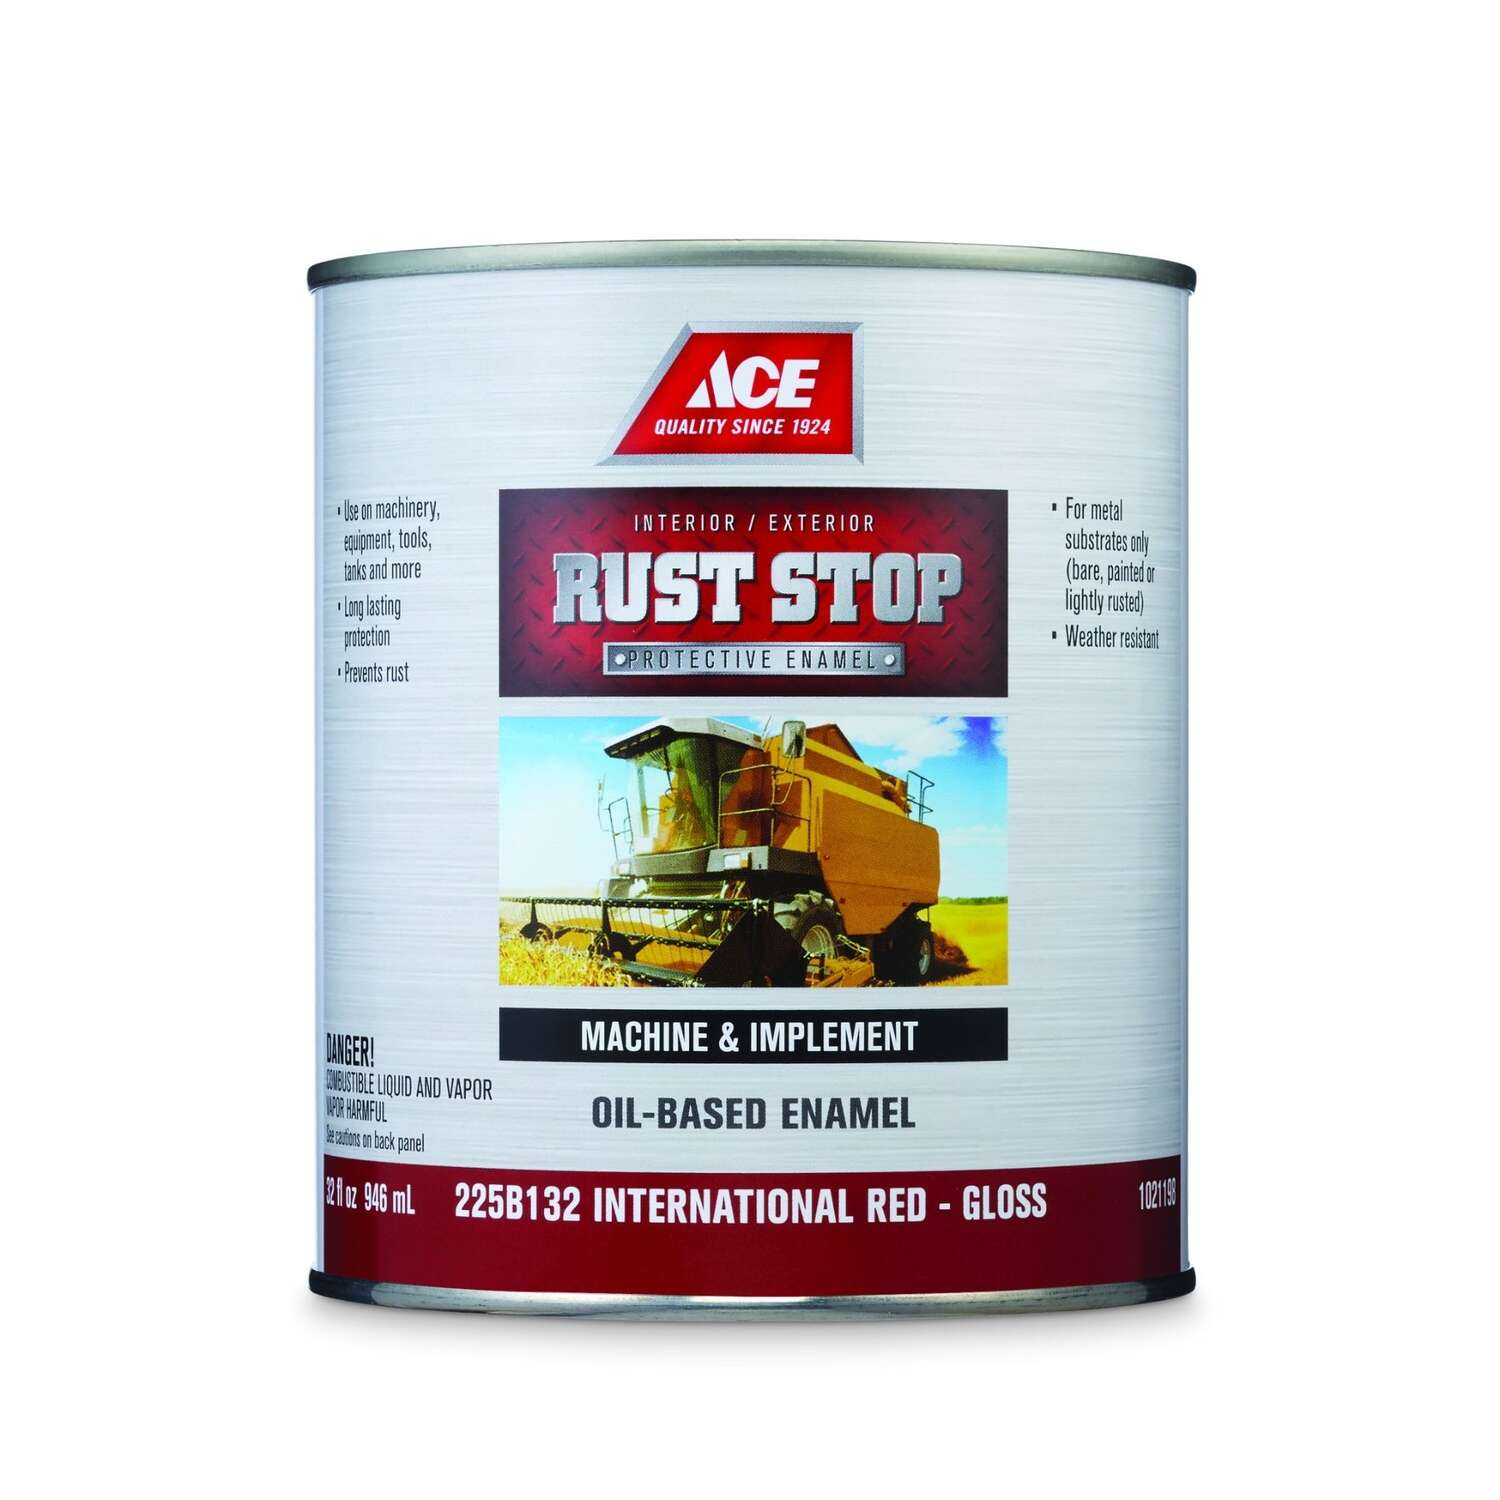 Ace  Rust Stop  Indoor / Outdoor  Gloss  International Red  Oil-Based Enamel  Rust Preventative Pain